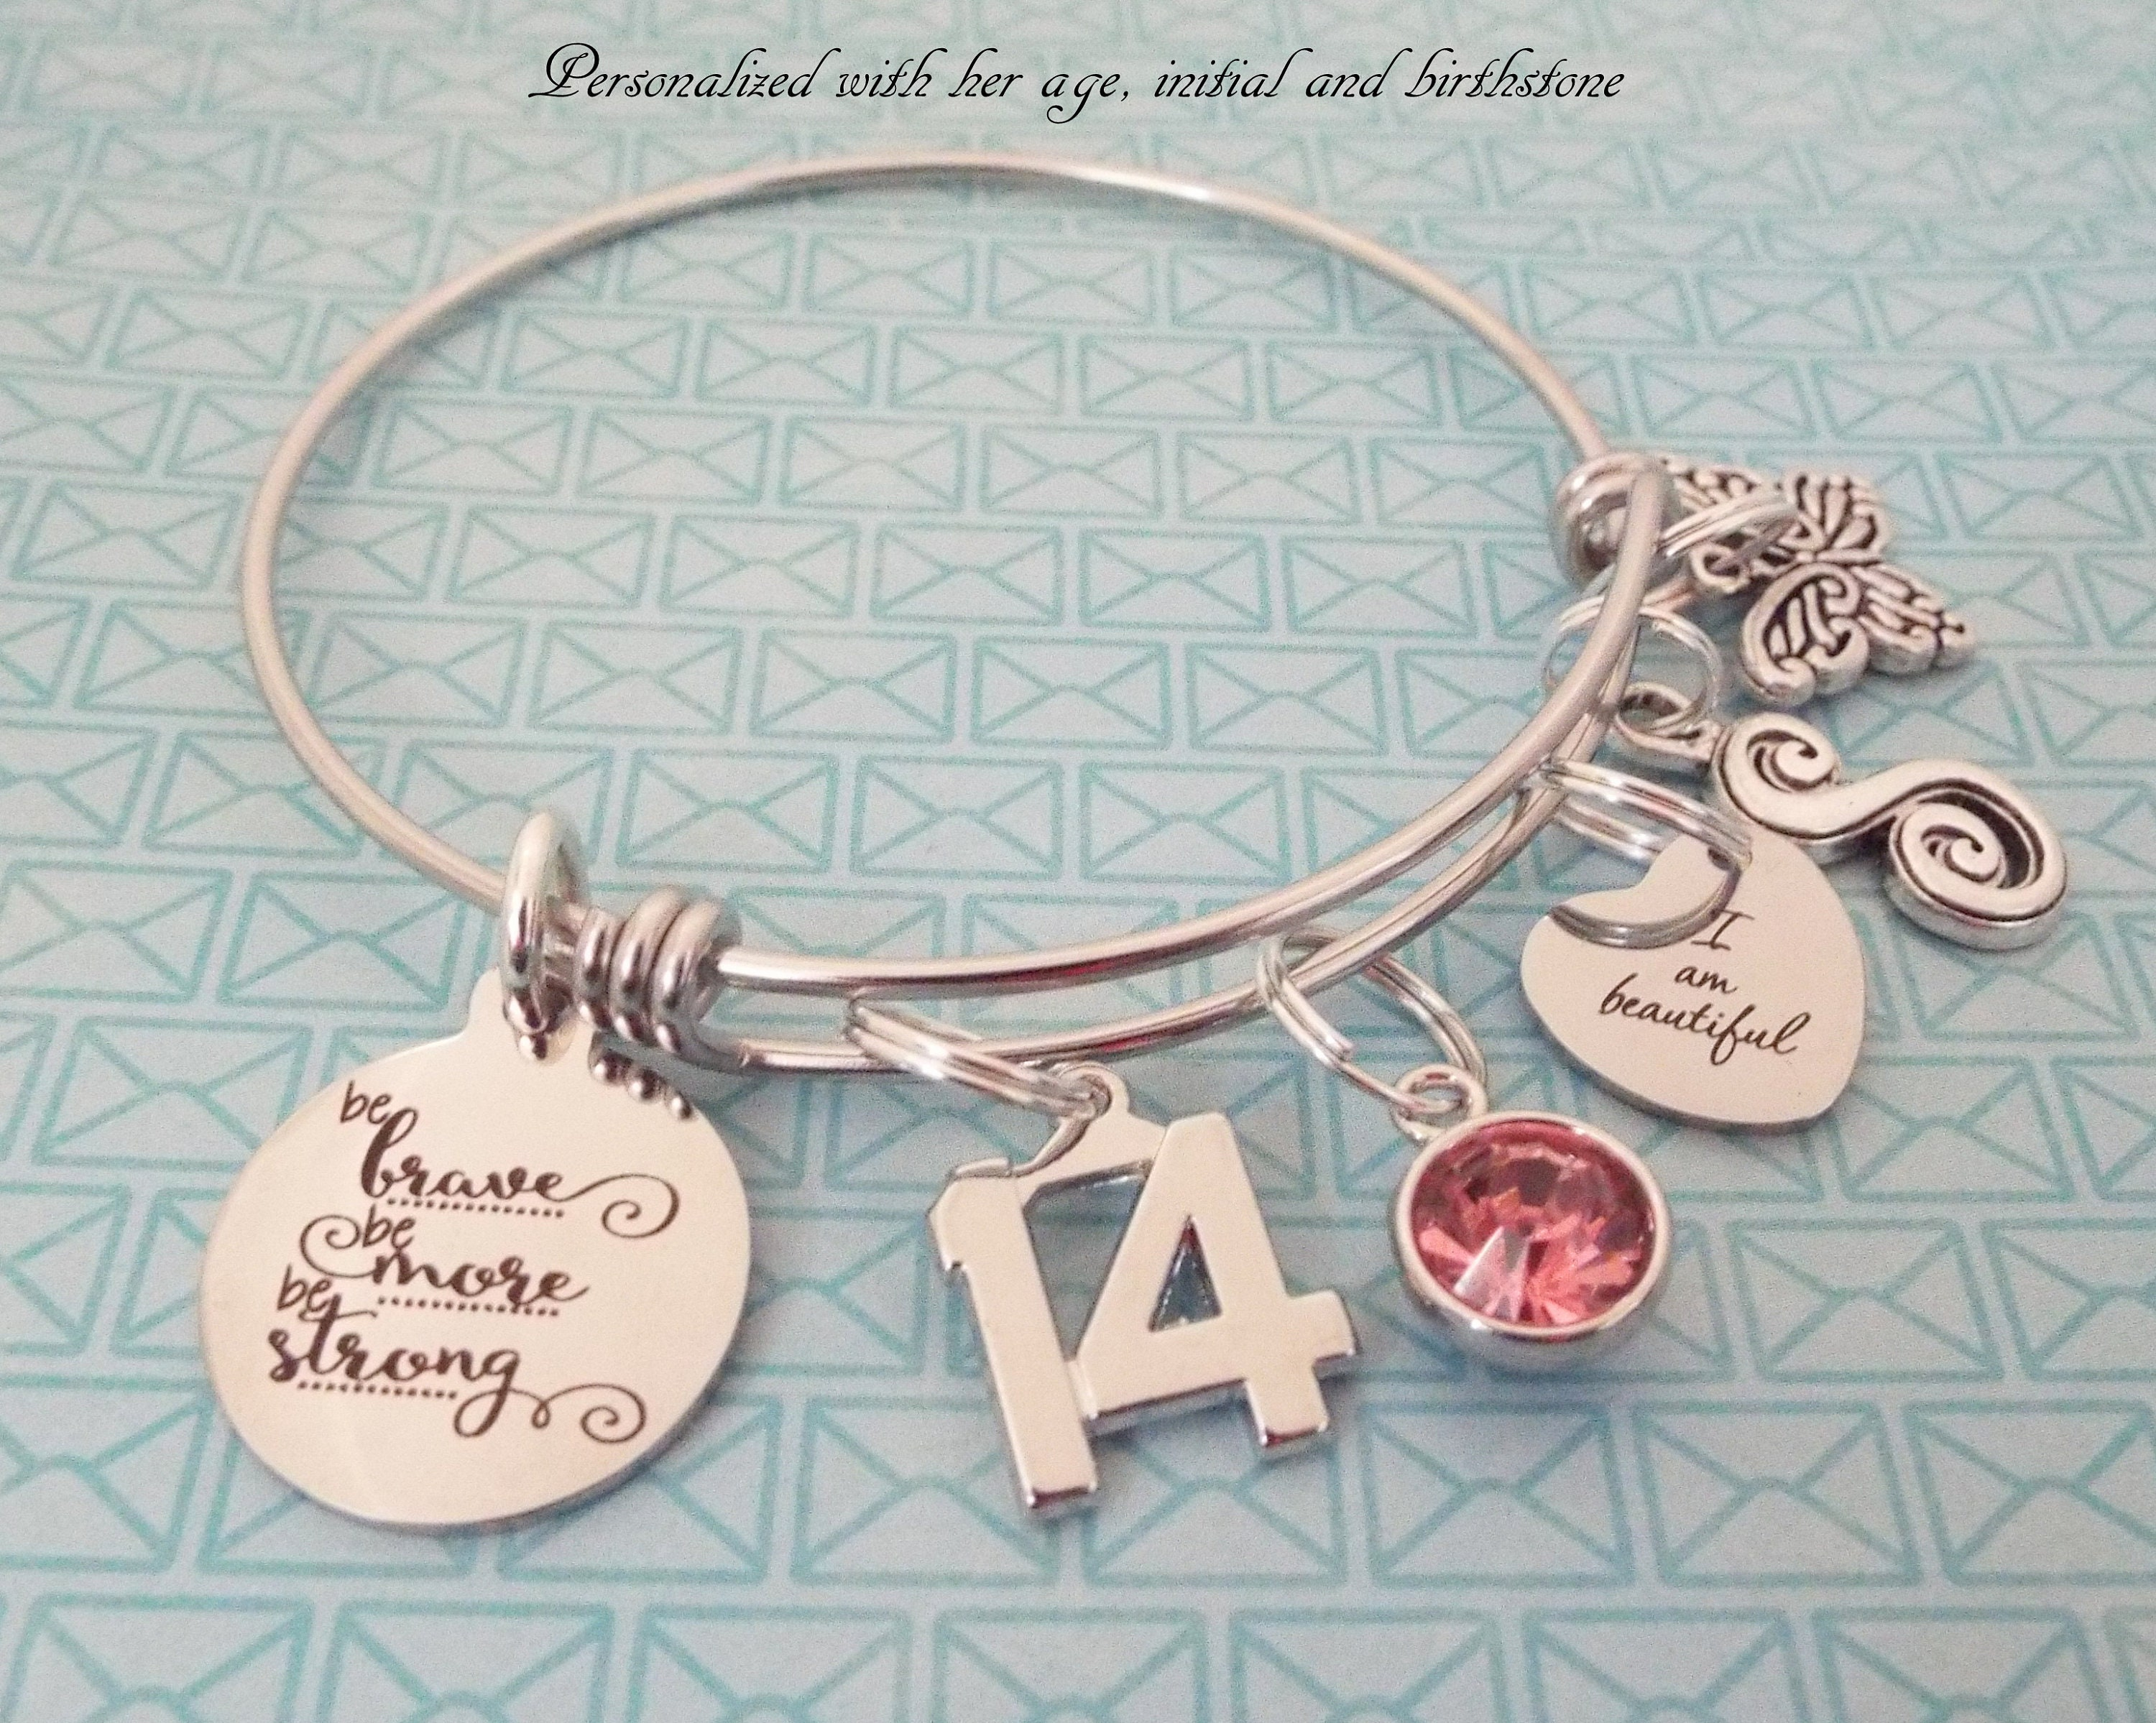 201 & Personalized Jewelry 14th Birthday Gift Girlu0027s Birthday Charm ...